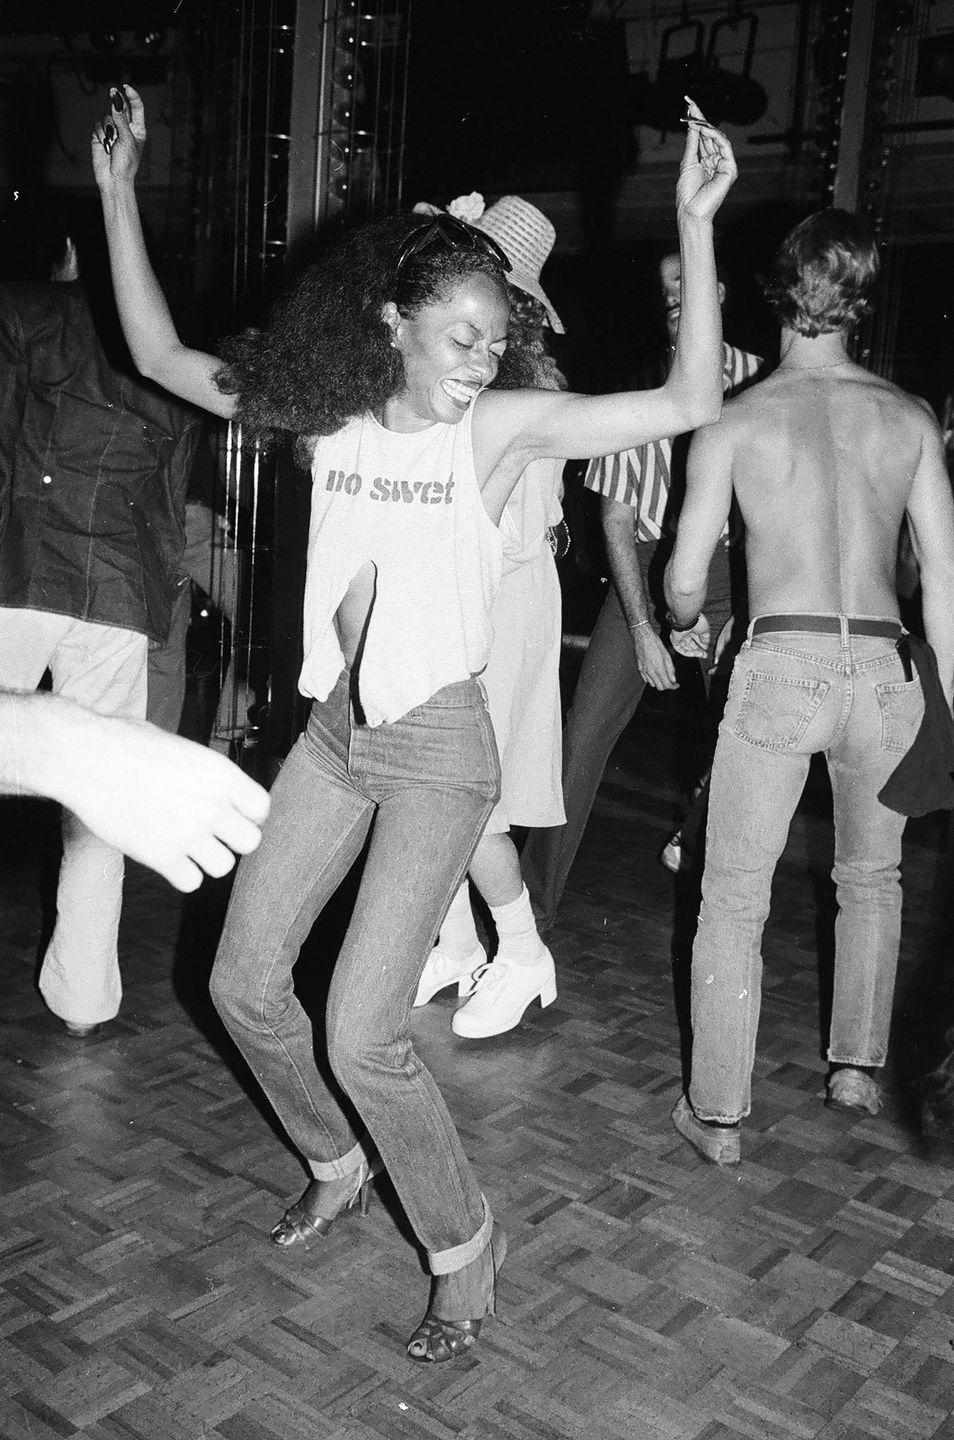 <p>Diana Ross dancing at Studio 54 in New York City, 1979.</p>